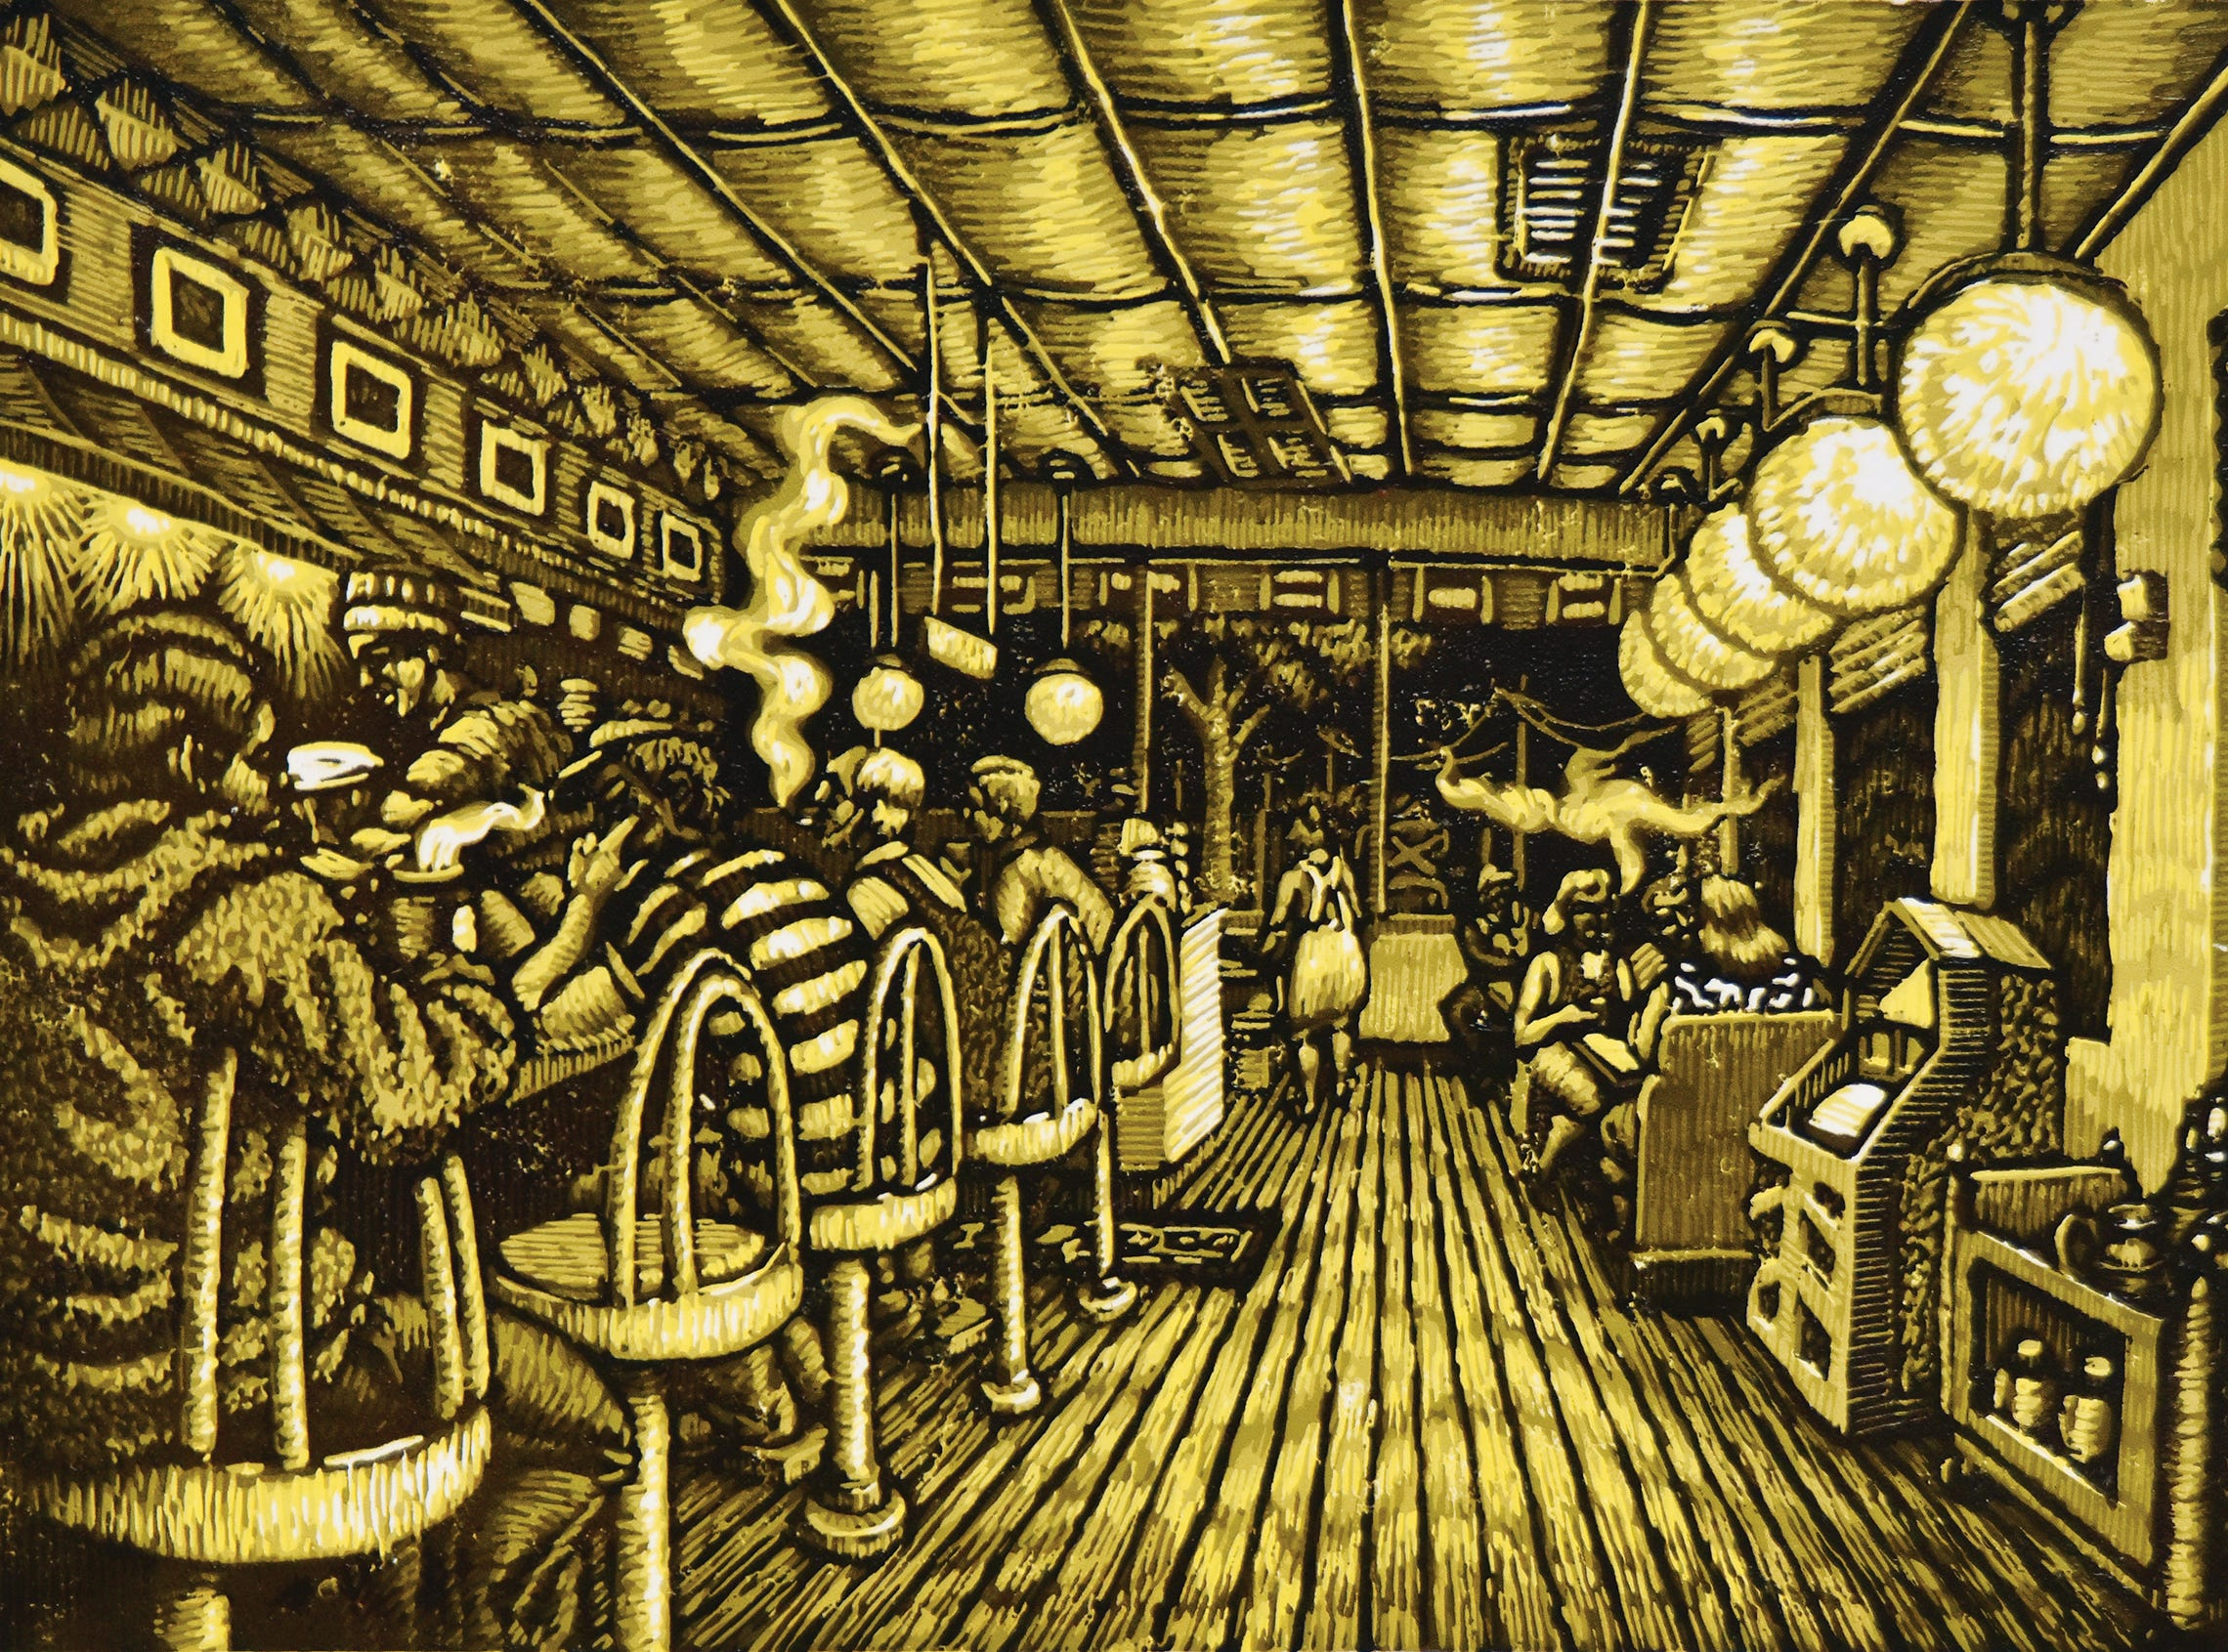 A reduction linocut by Mark Mulfinger.